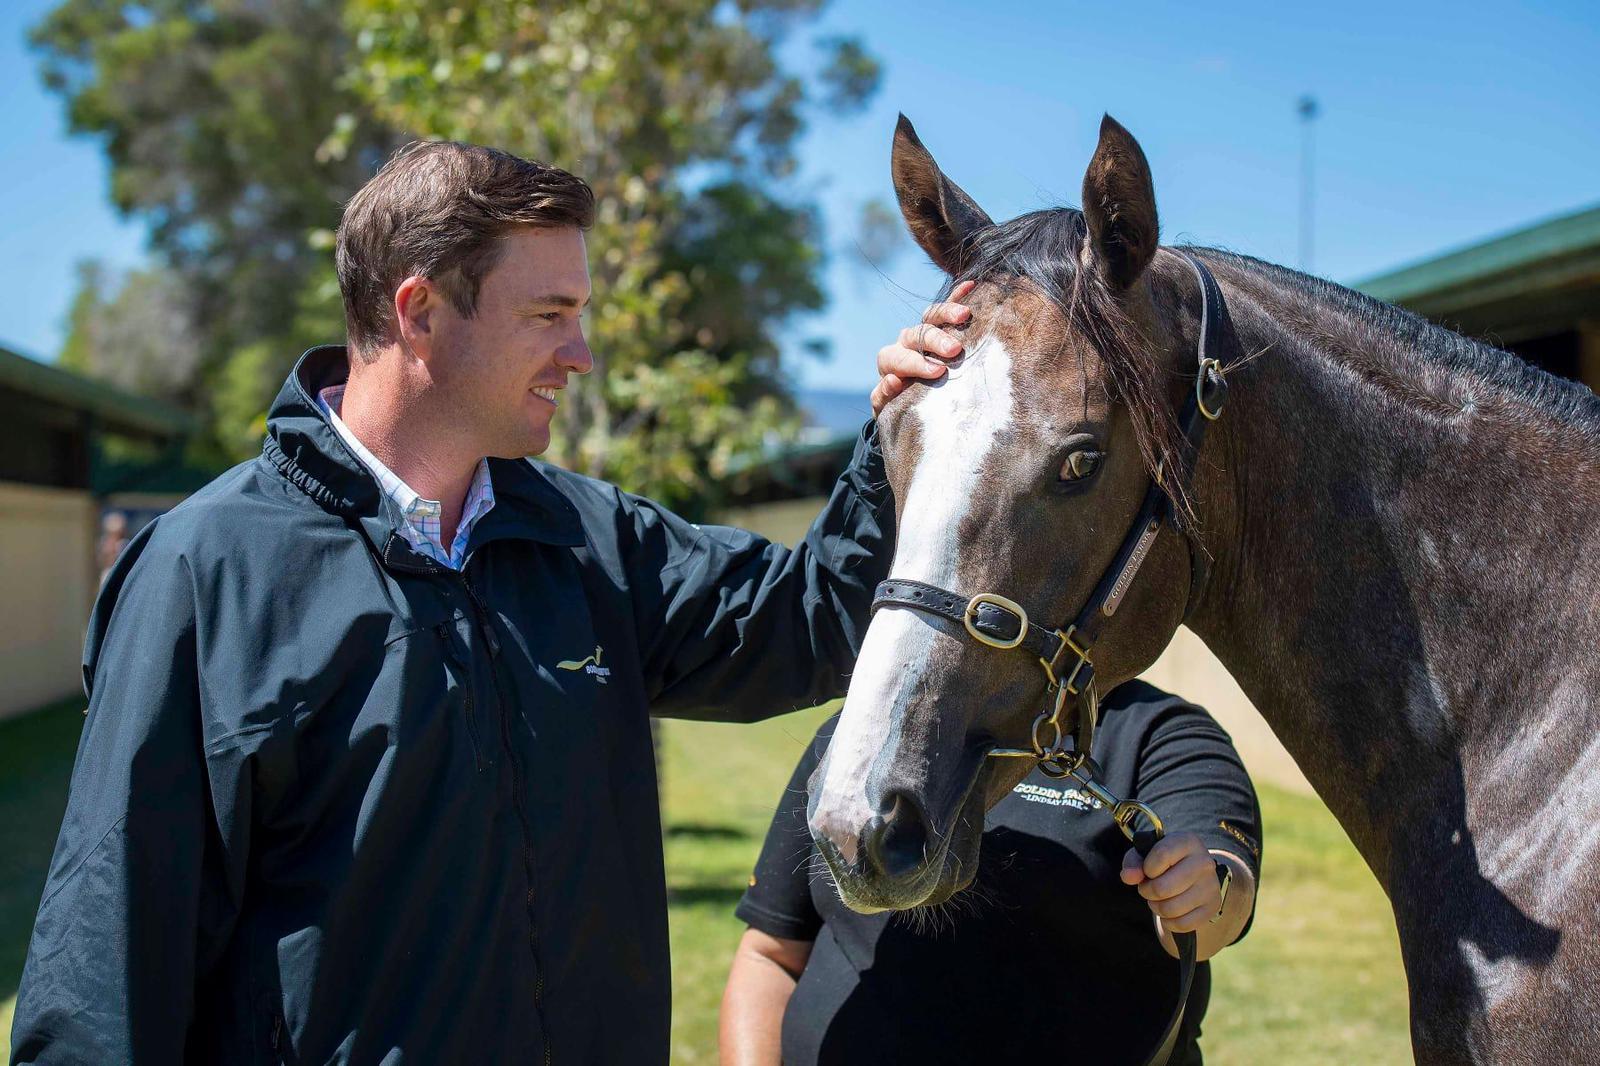 Buying American Mares: What are the costs involved with buying a broodmare in USA and importing to Australia?